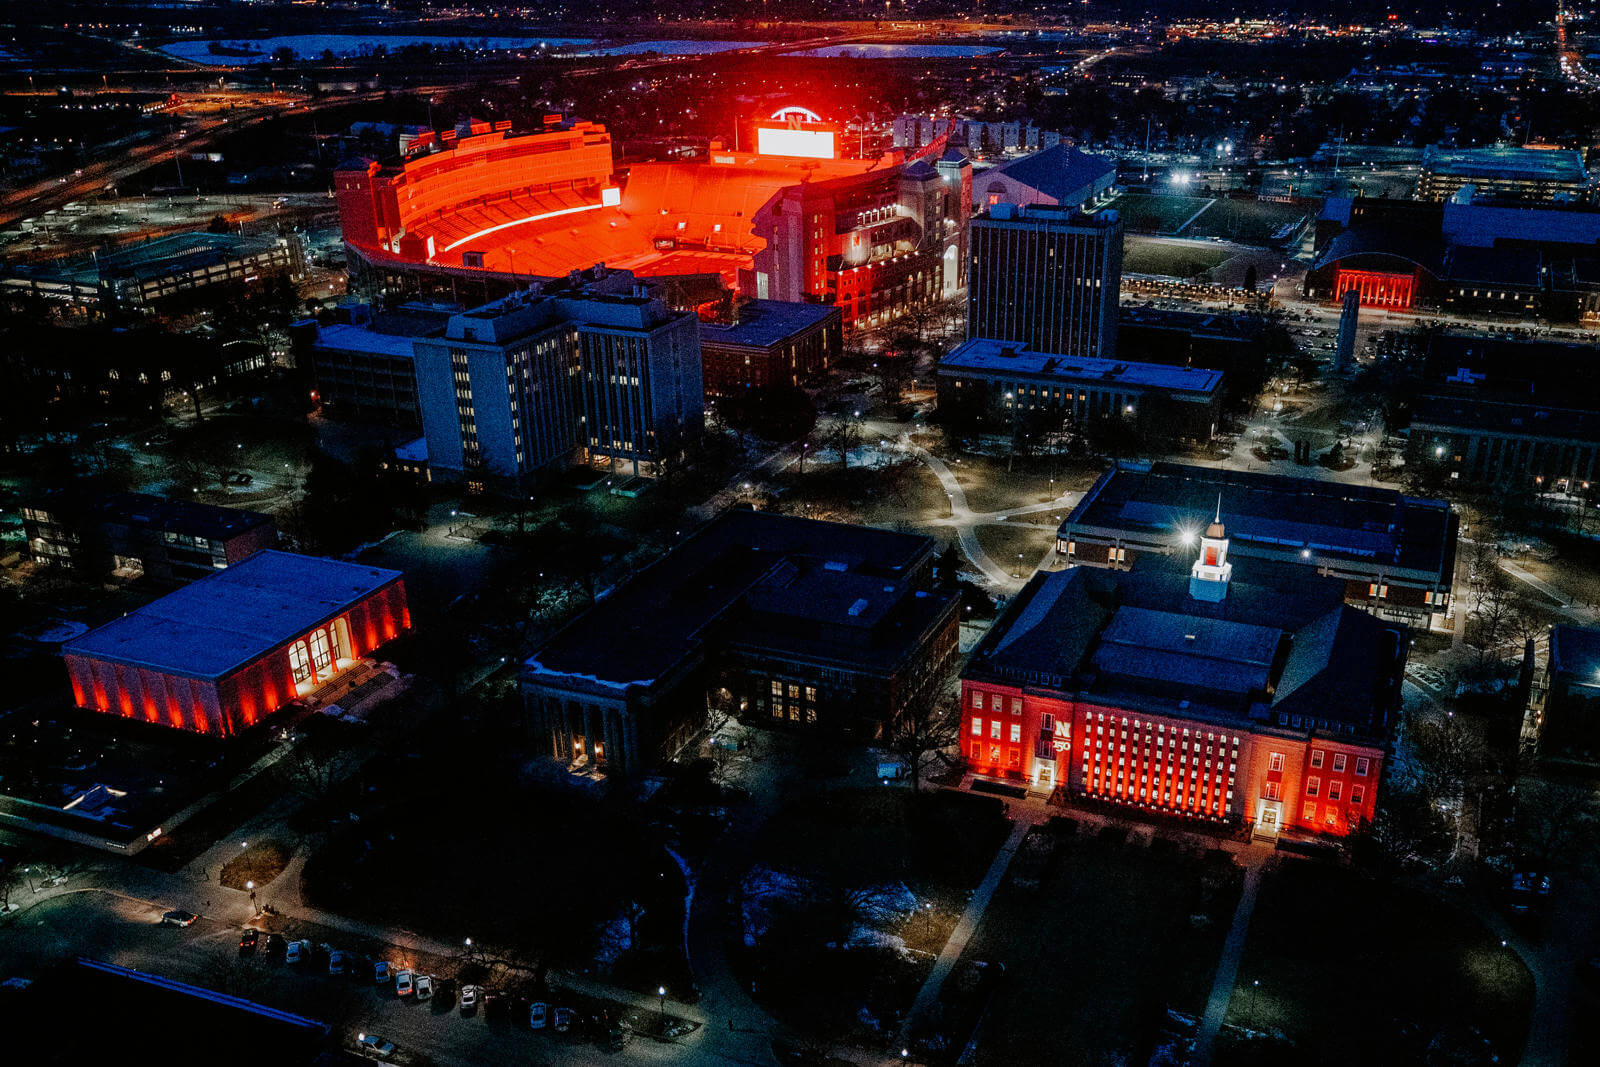 Red lights light up Memorial Stadium at night